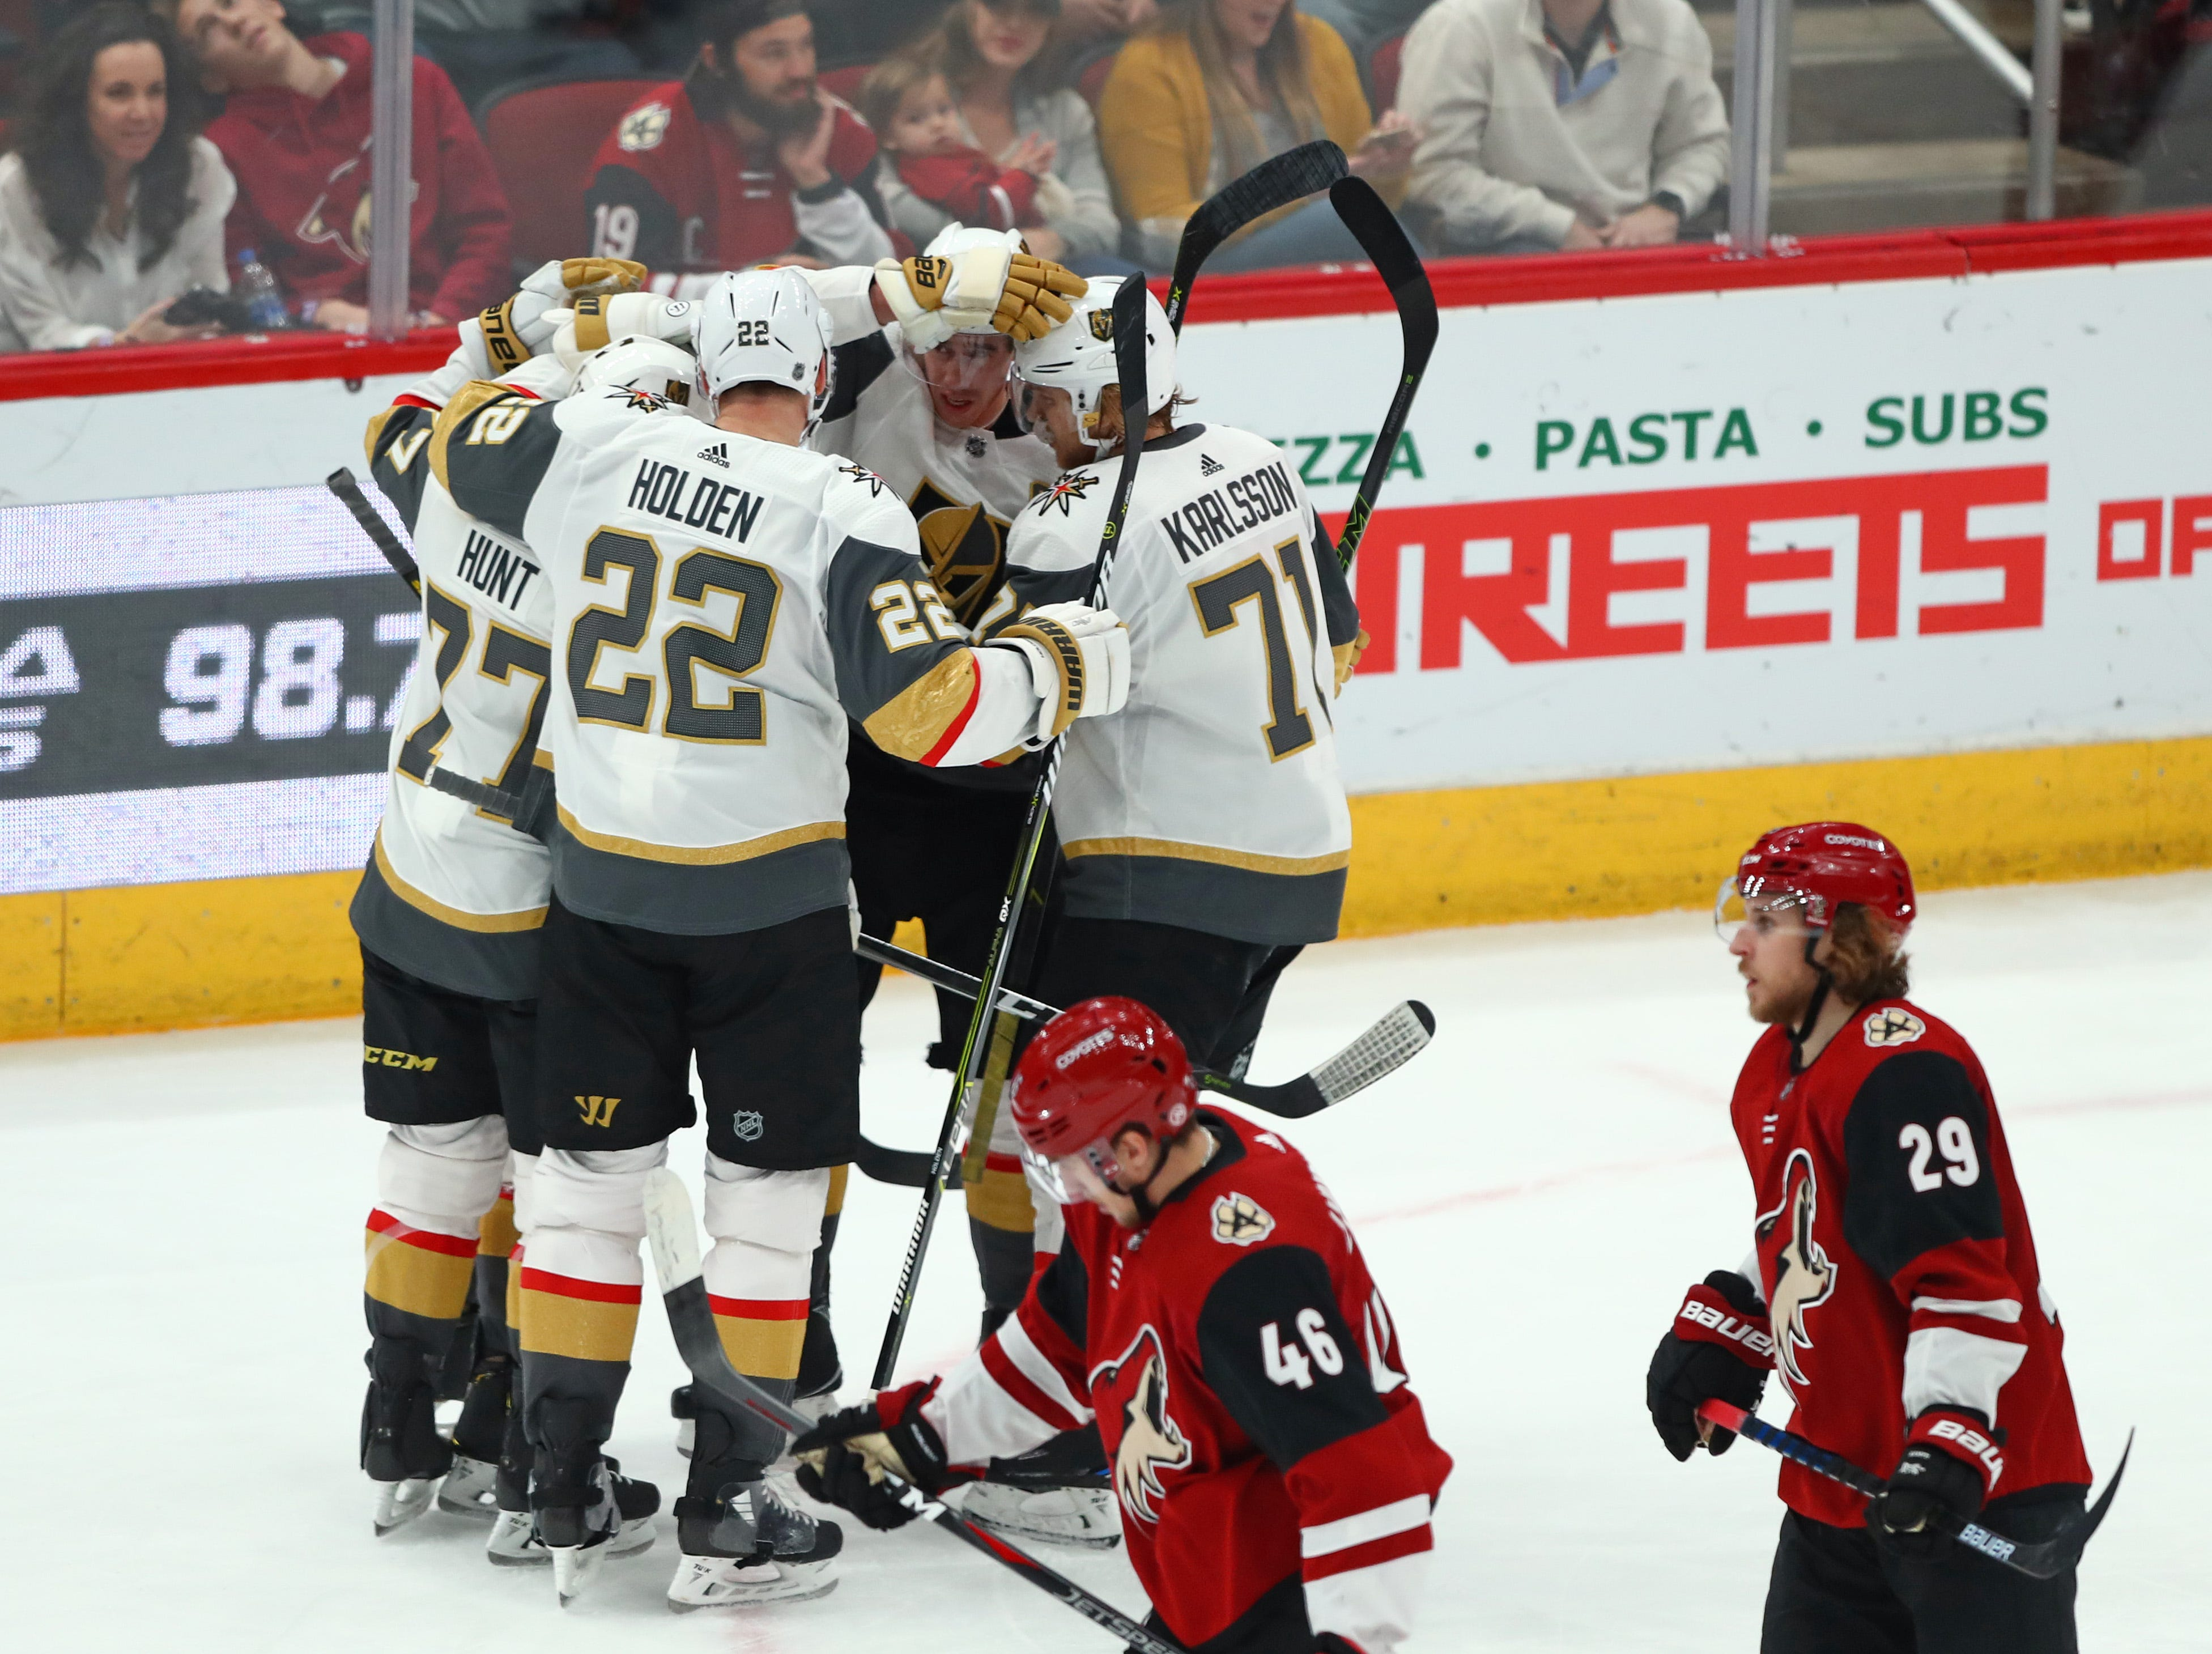 Dec 30, 2018; Glendale, AZ, USA; Vegas Golden Knights right wing Reilly Smith (19) celebrates a second period goal with teammates against the Arizona Coyotes at Gila River Arena. Mandatory Credit: Mark J. Rebilas-USA TODAY Sports